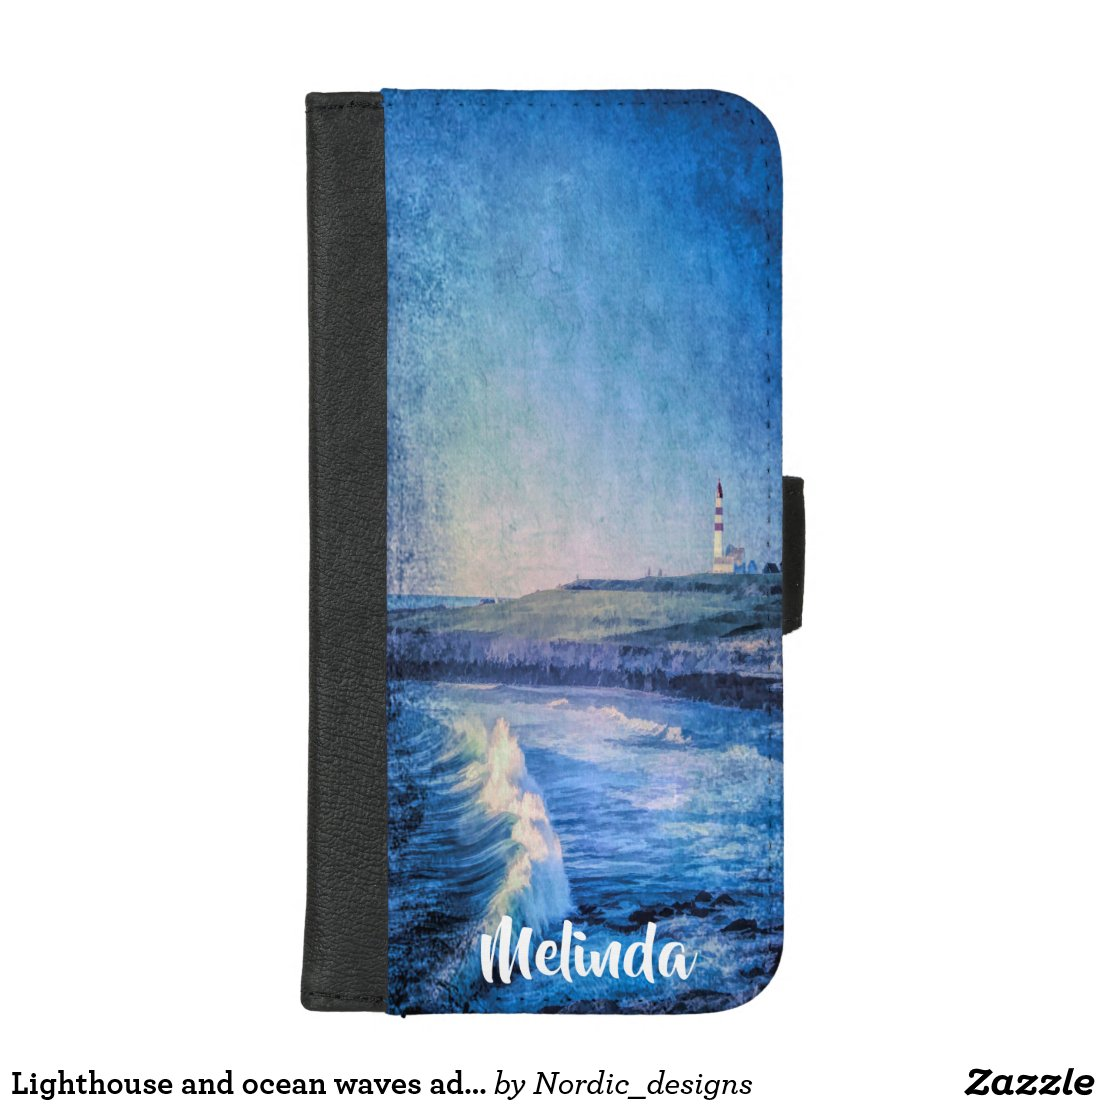 Lighthouse and ocean waves add name watercolored iPhone 8/7 plus wallet case